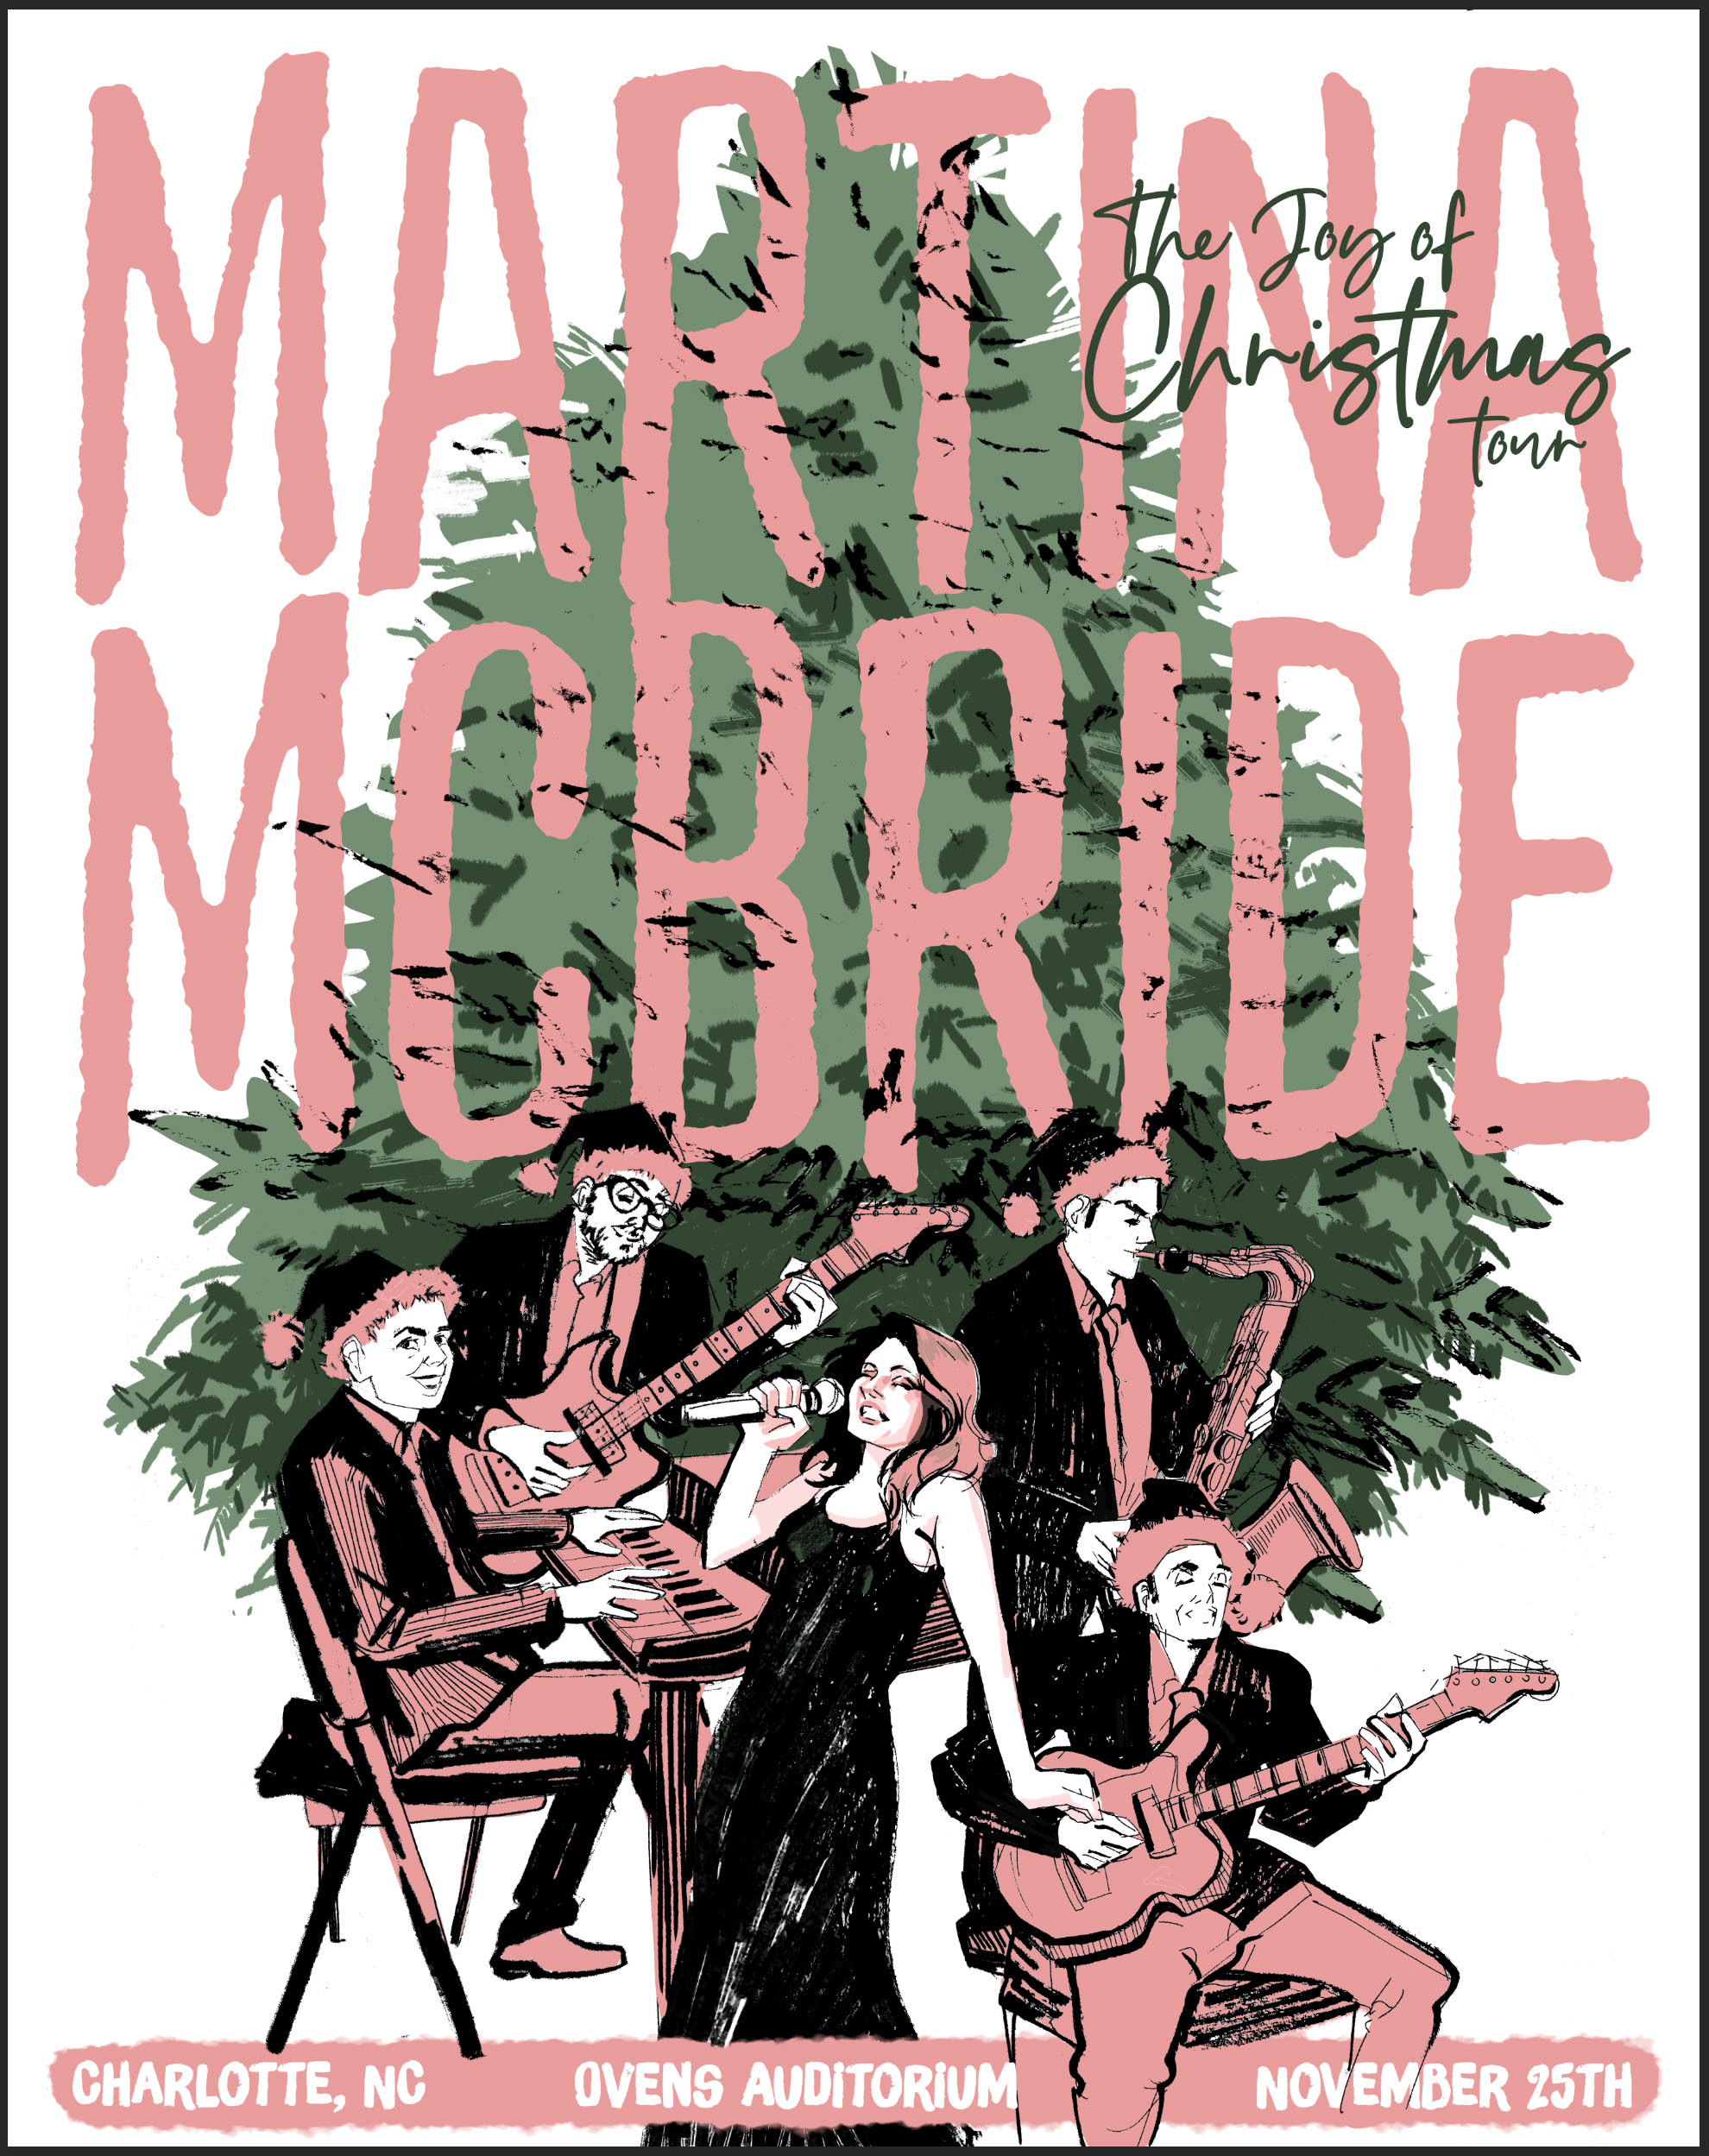 Martina Mcbride Joy of Christmas Poster